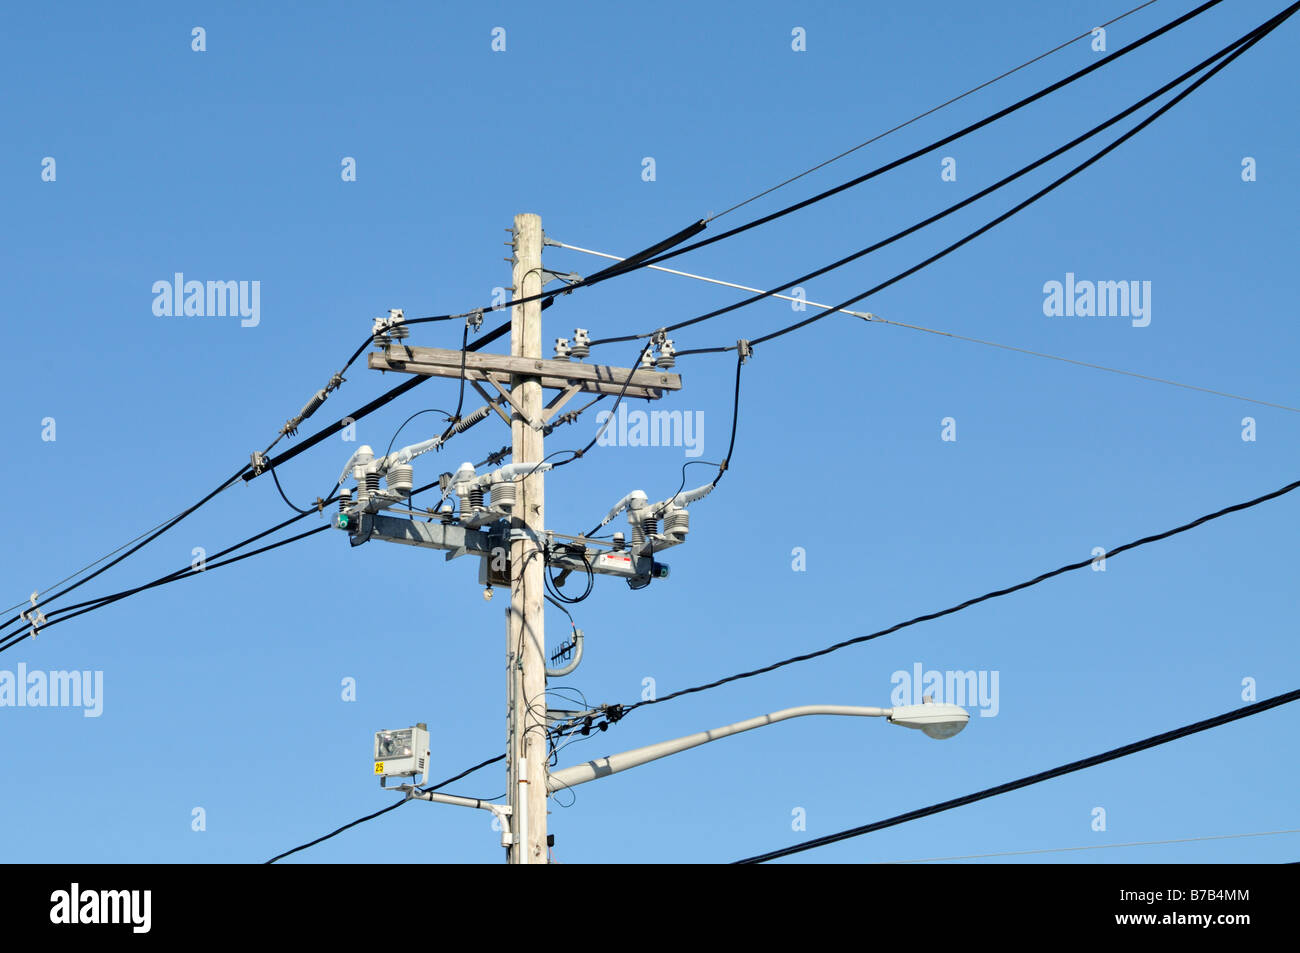 hight resolution of telephone and electric pole with wires insulators cables and street lamp